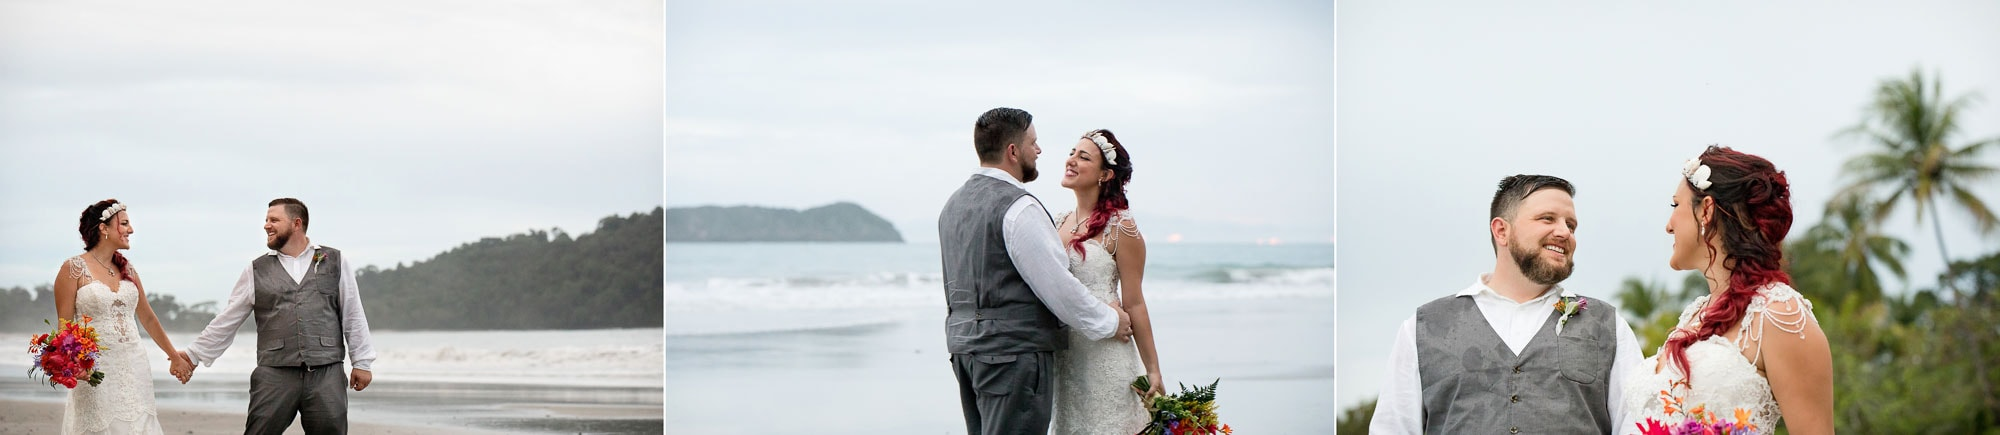 Bridal portraits on the beach in between the raindrops